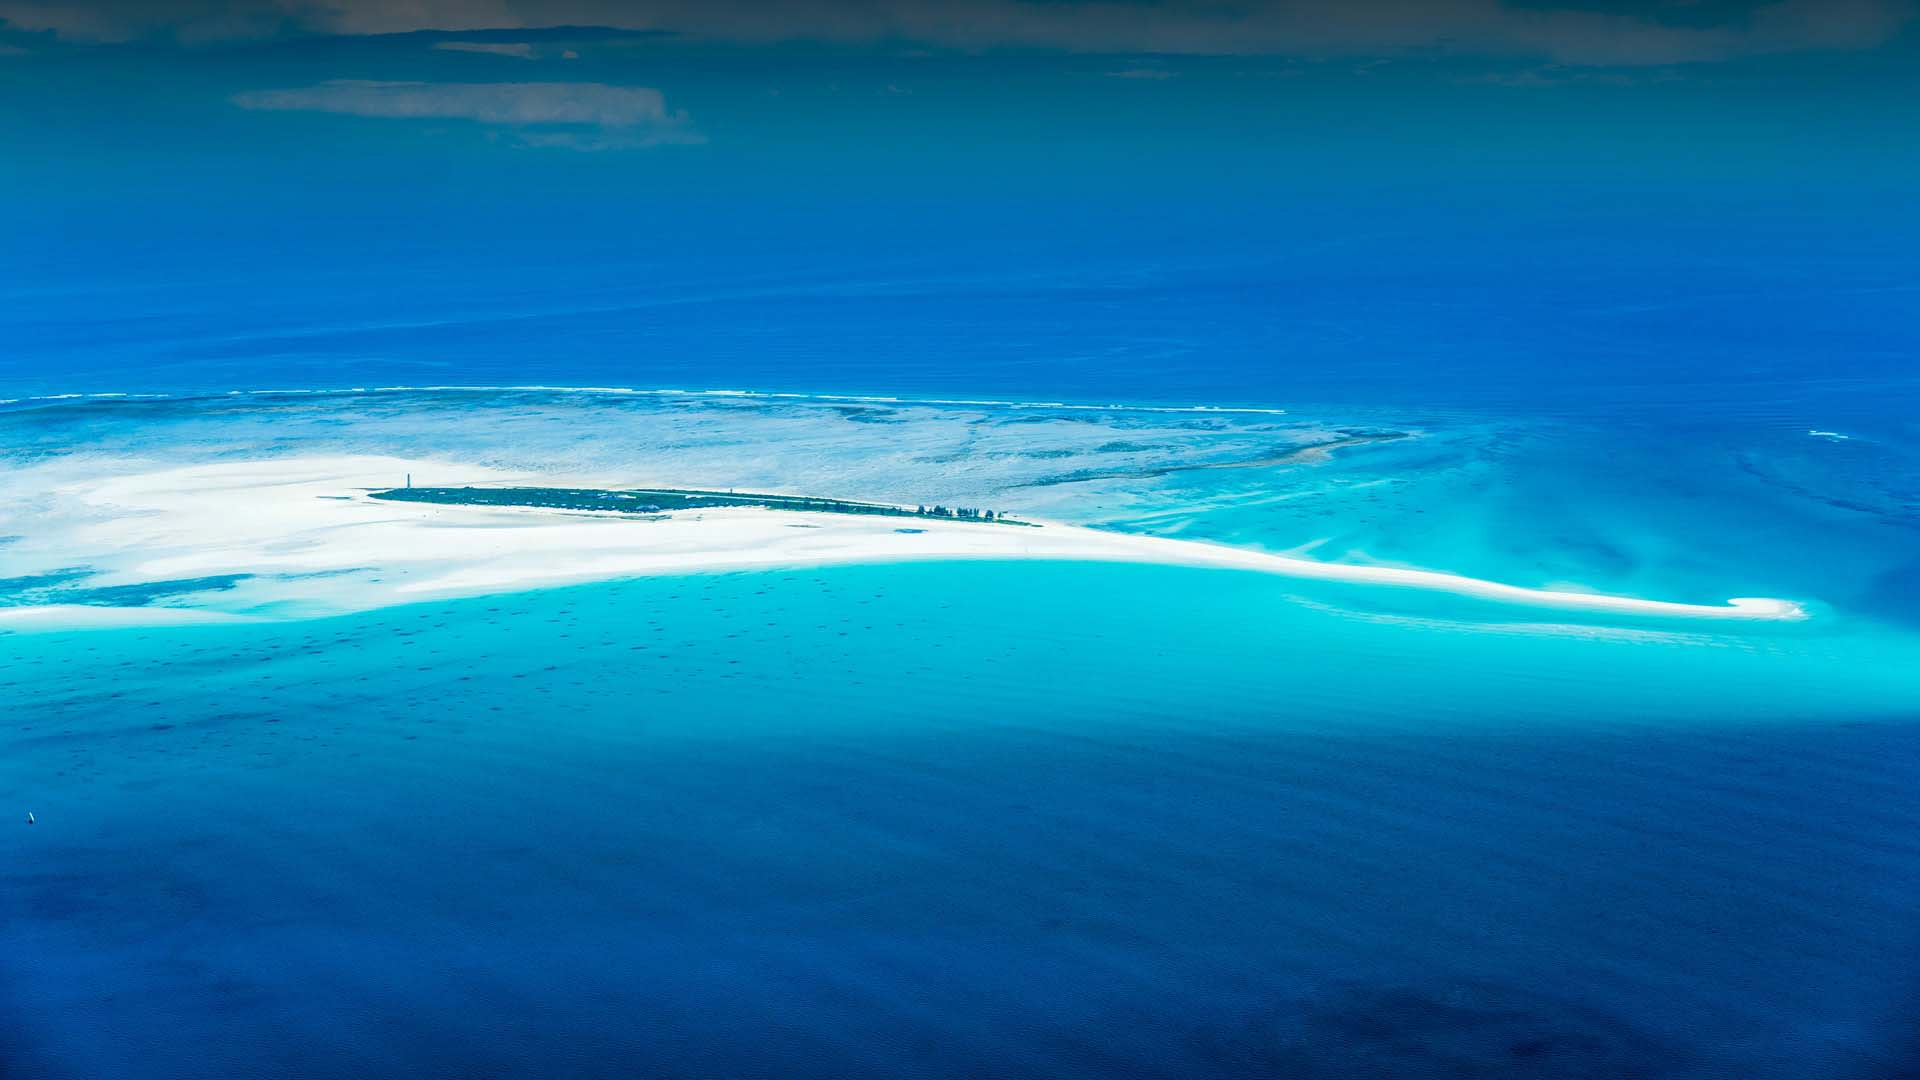 https://assets.anantara.com/image/upload/q_auto/media/minor/anantara/images/anantara-medjumbe-island-resort/the-resort/desktop-banner/anantara_medjumbe_island_island_ariel_header_1920x1080.jpg